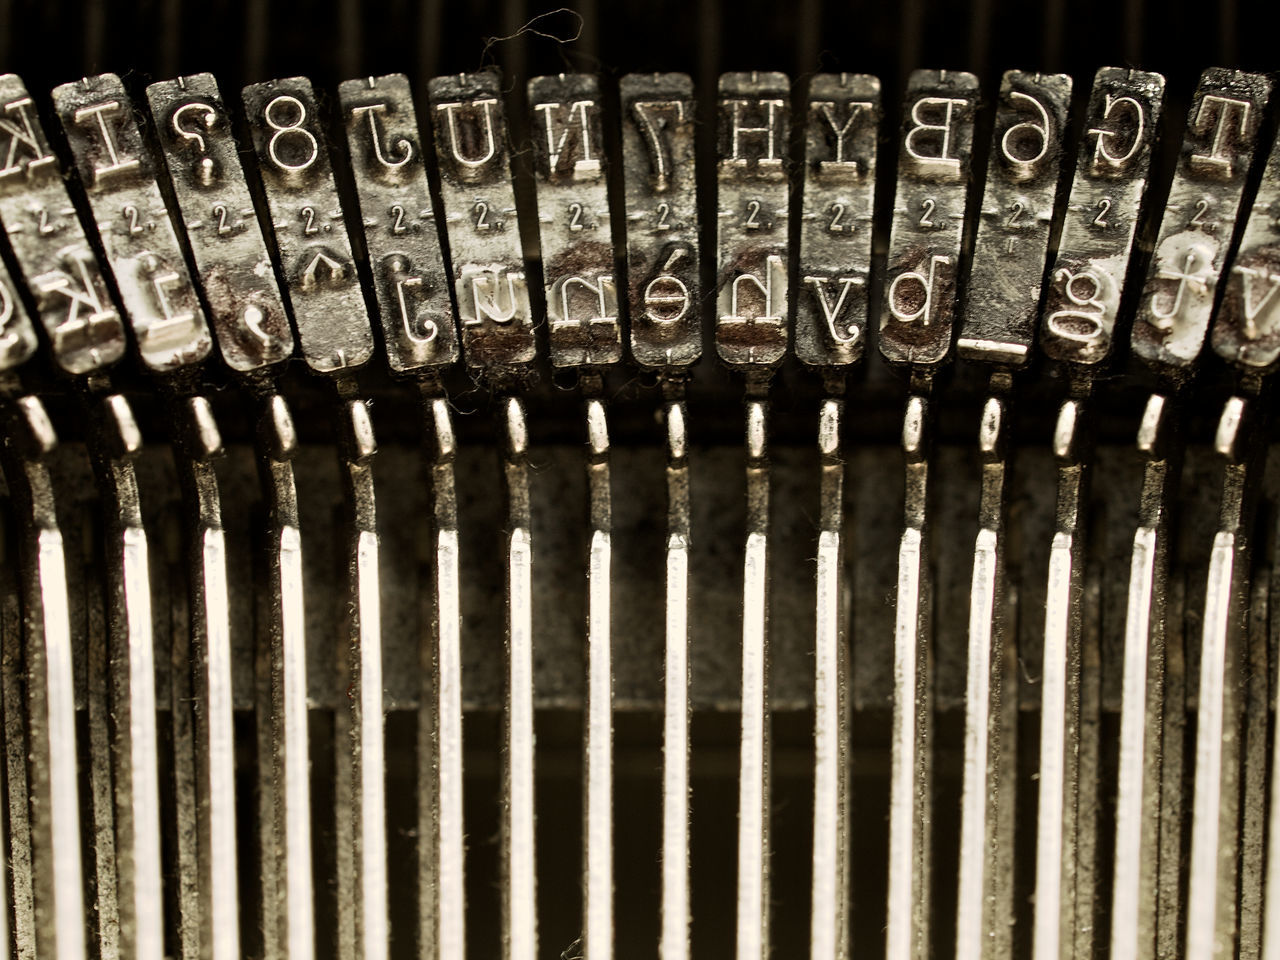 Olivetti Lettera 35 Arrangement Business Close-up Design Detail Full Frame Geometry In A Row Indoors  Large Group Of Objects Mechanics Mechanism Metal Metallic No People Old Old-fashioned Order Part Of Pattern Repetition Still Life Typewriterporn TypeWriters Wall Writing Machine